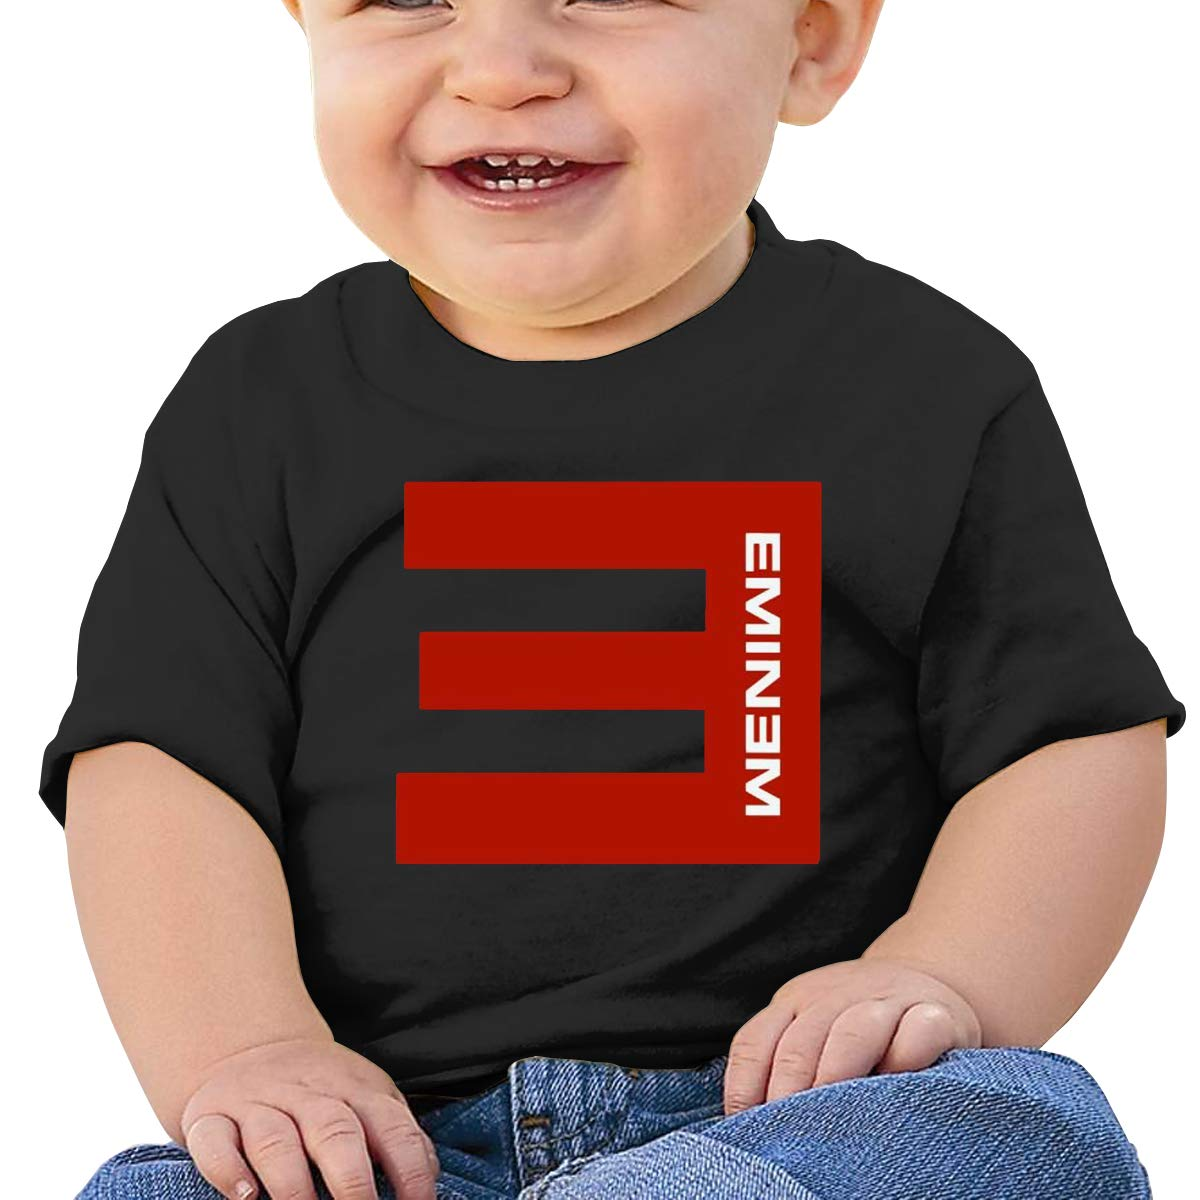 DONGLY 6-24 Month Baby T-Shirt Eminem Nordic Winter Personality Wild Black